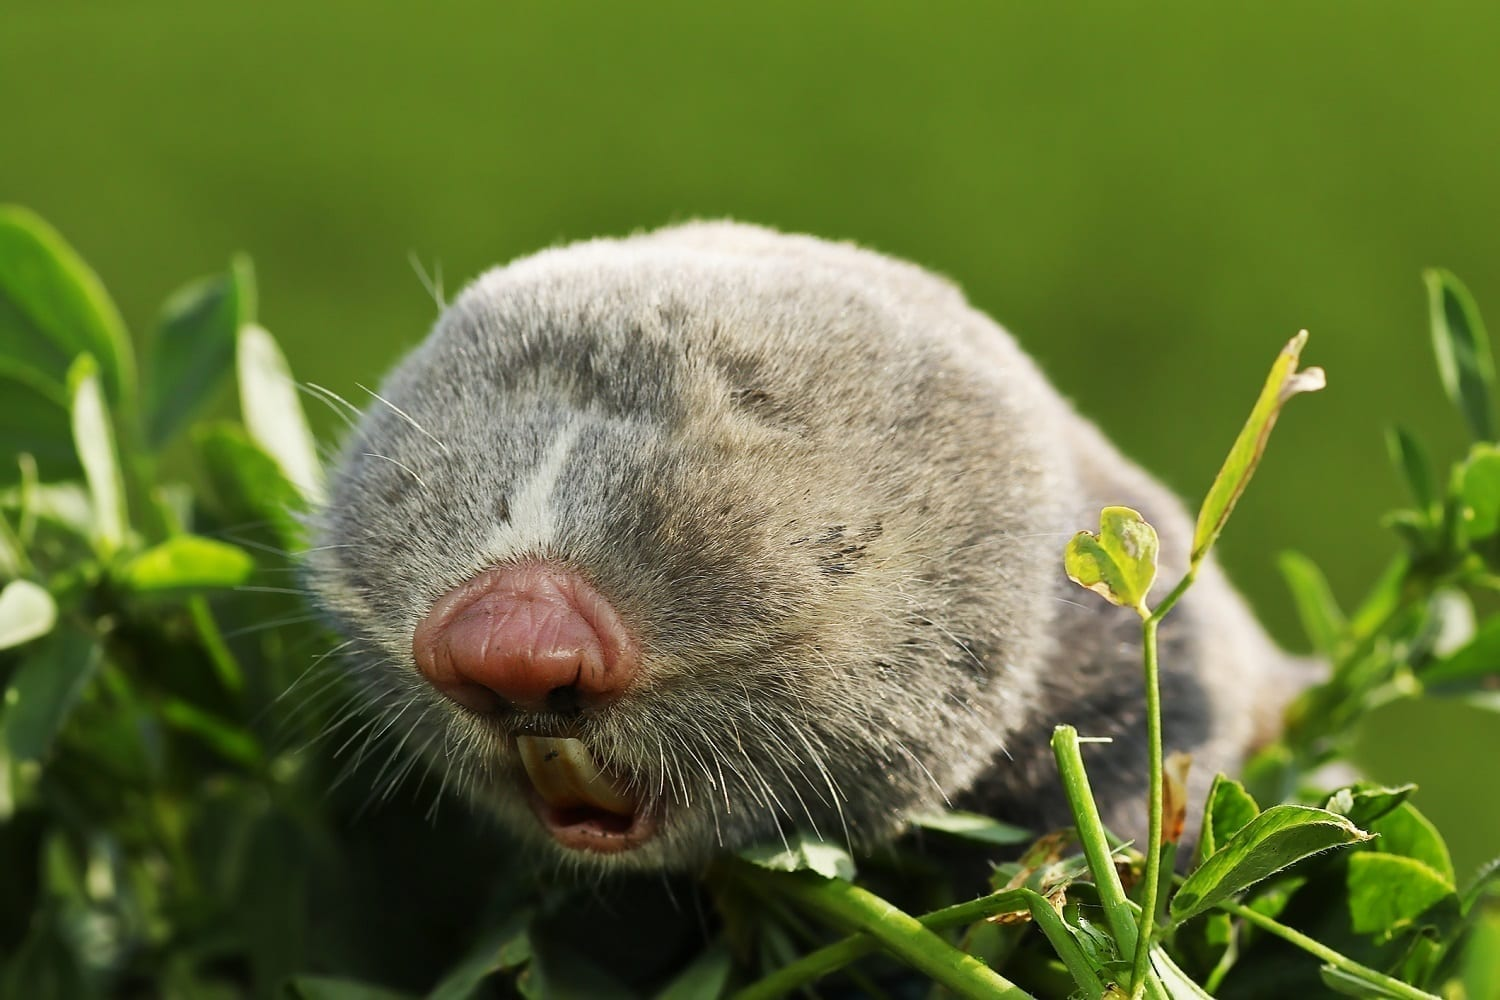 Blind Mole-Rat showing furry face with no visible eyes: ID 138105249 © Taviphoto | Dreamstime.com